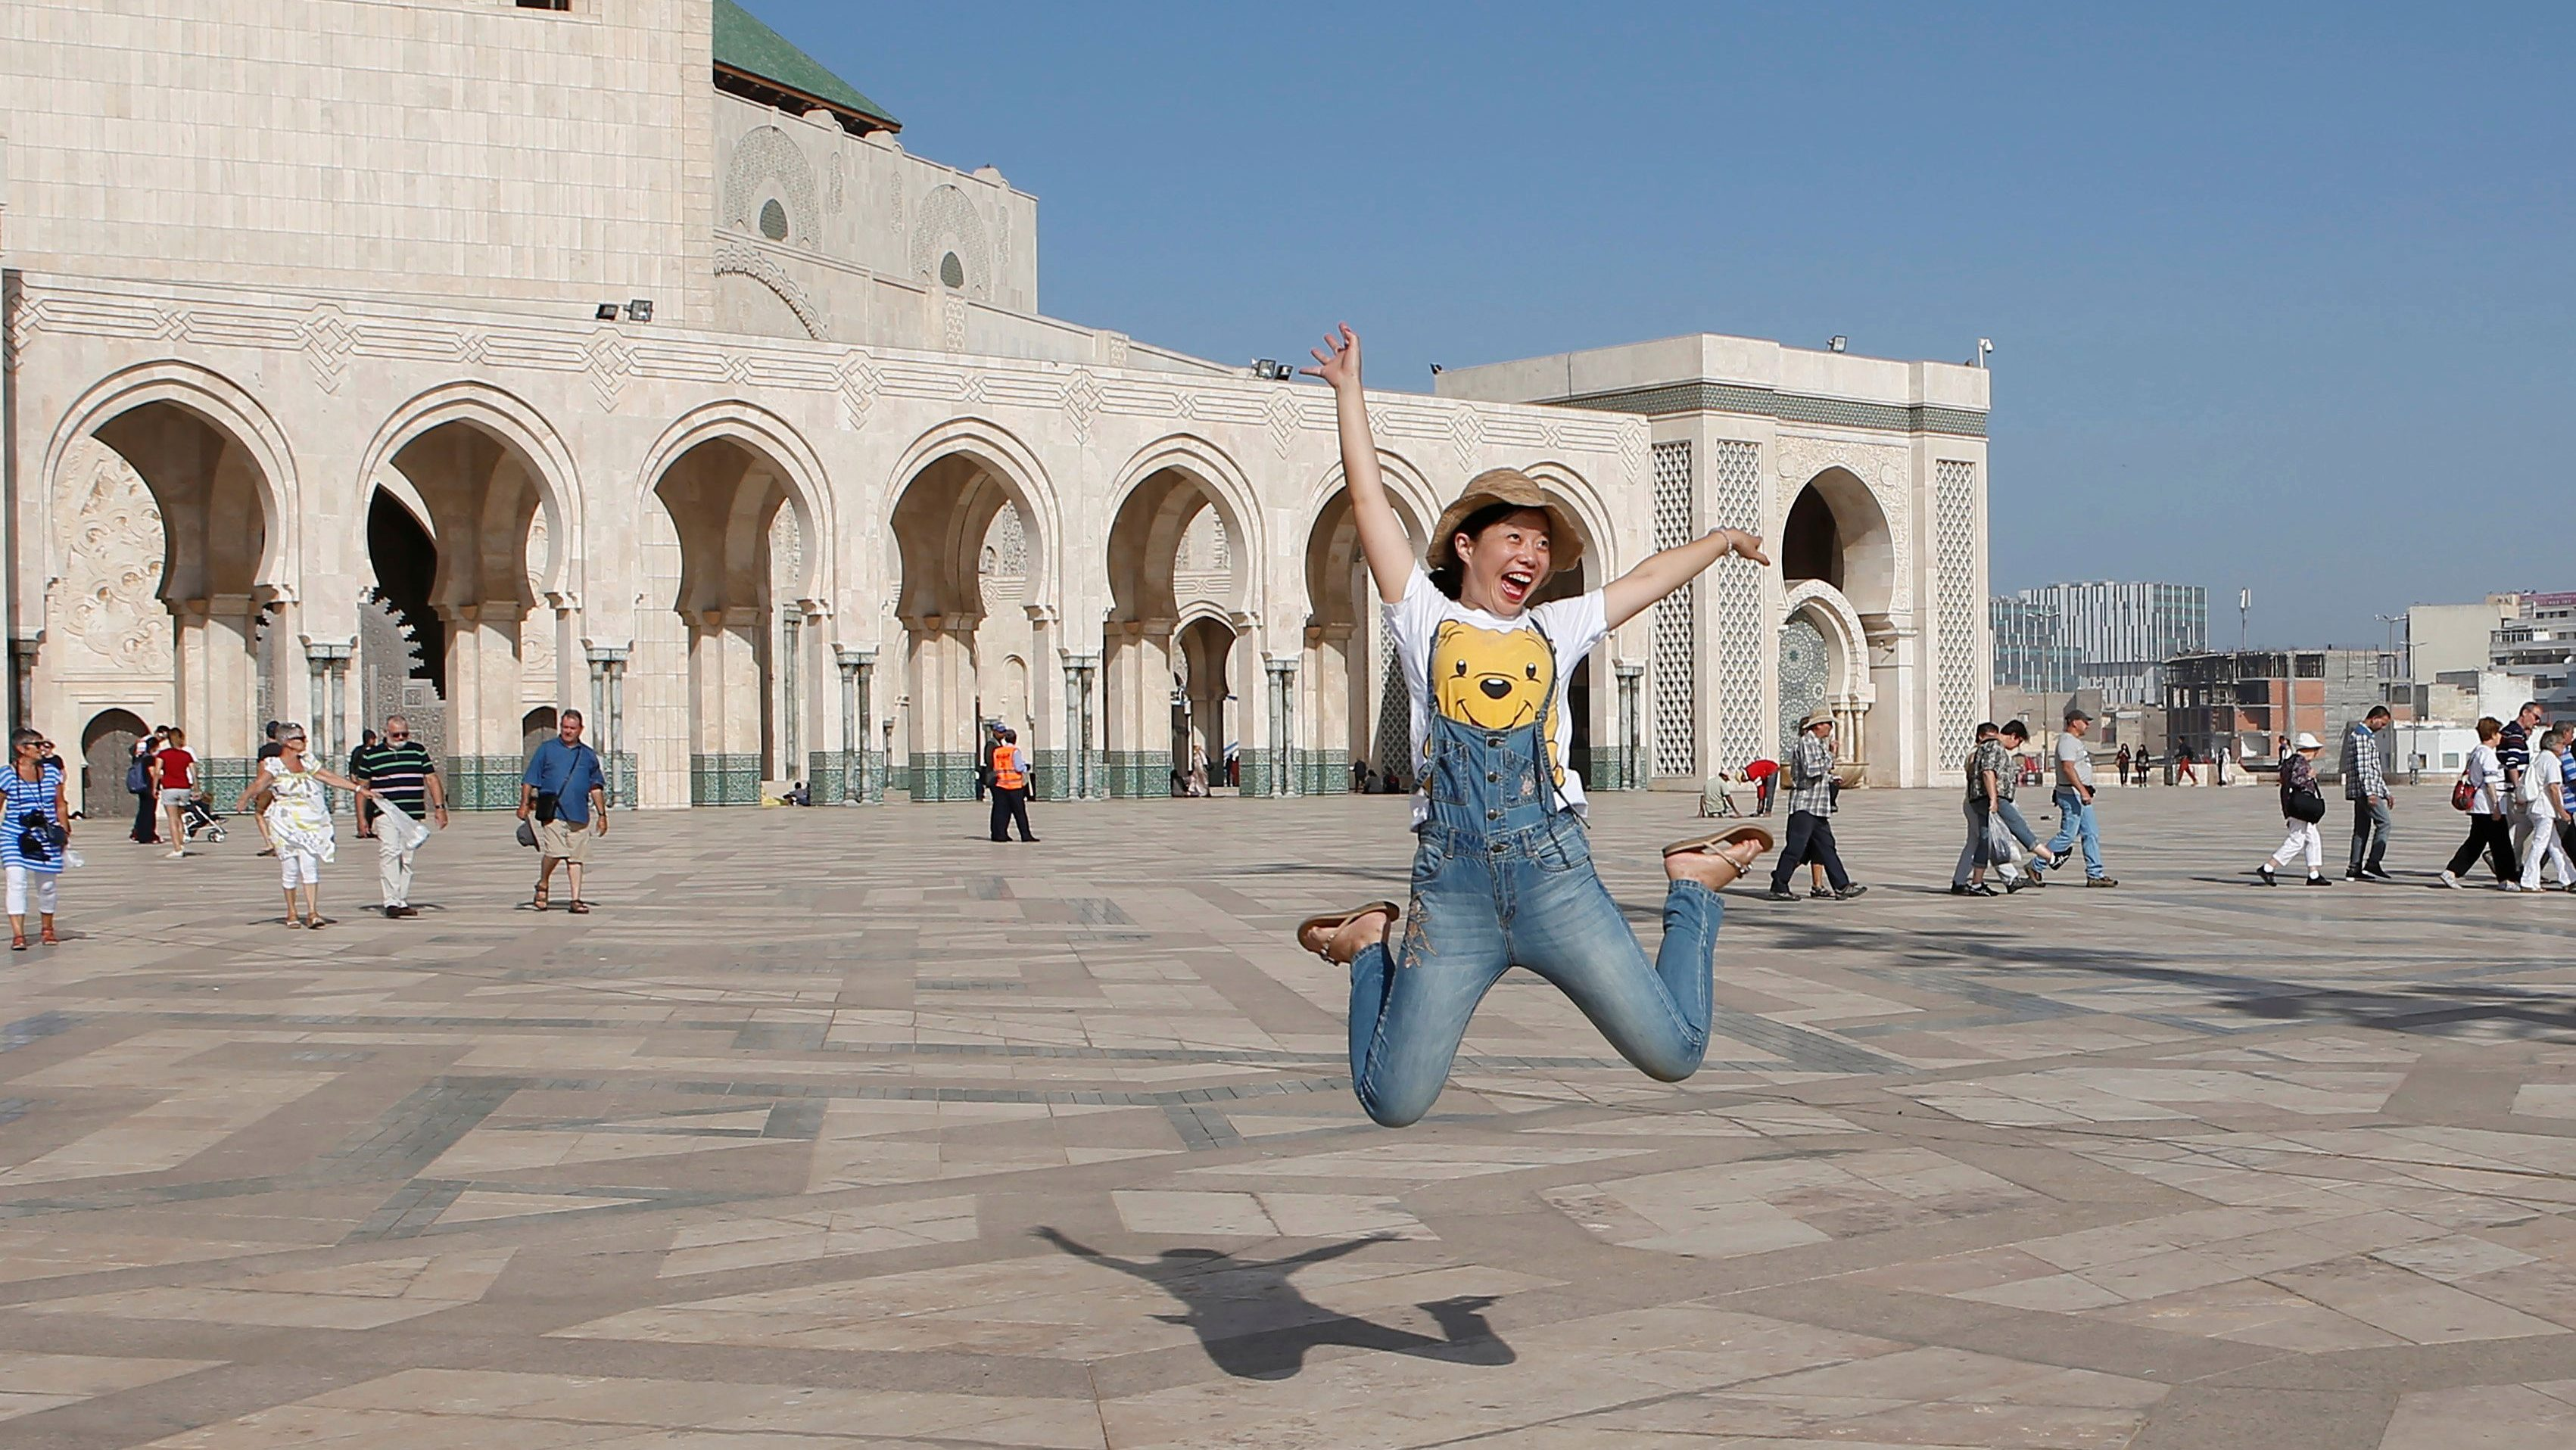 Chinese tourists jump as they pose for photographs at the esplanade of the Hassan II Mosque in Casablanca, October 6, 2016.